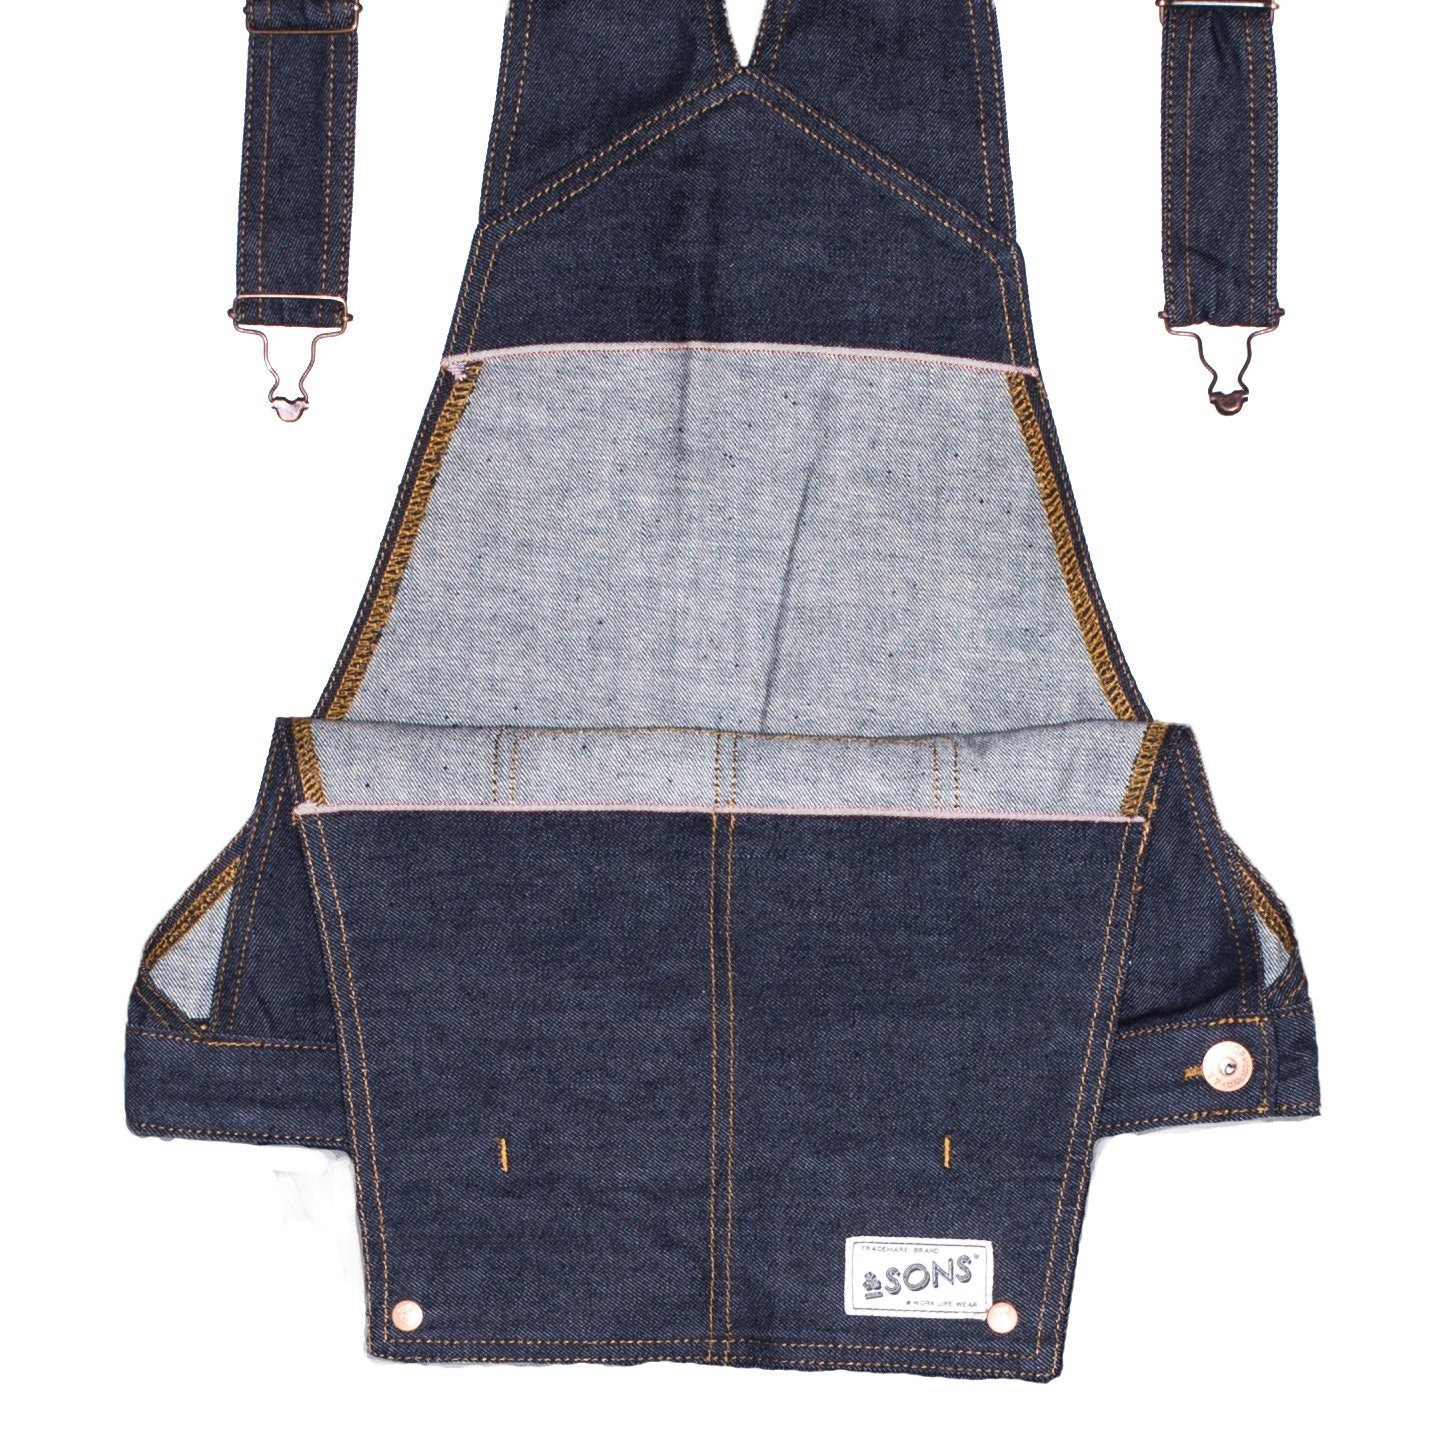 &SONS Women's Union Overalls